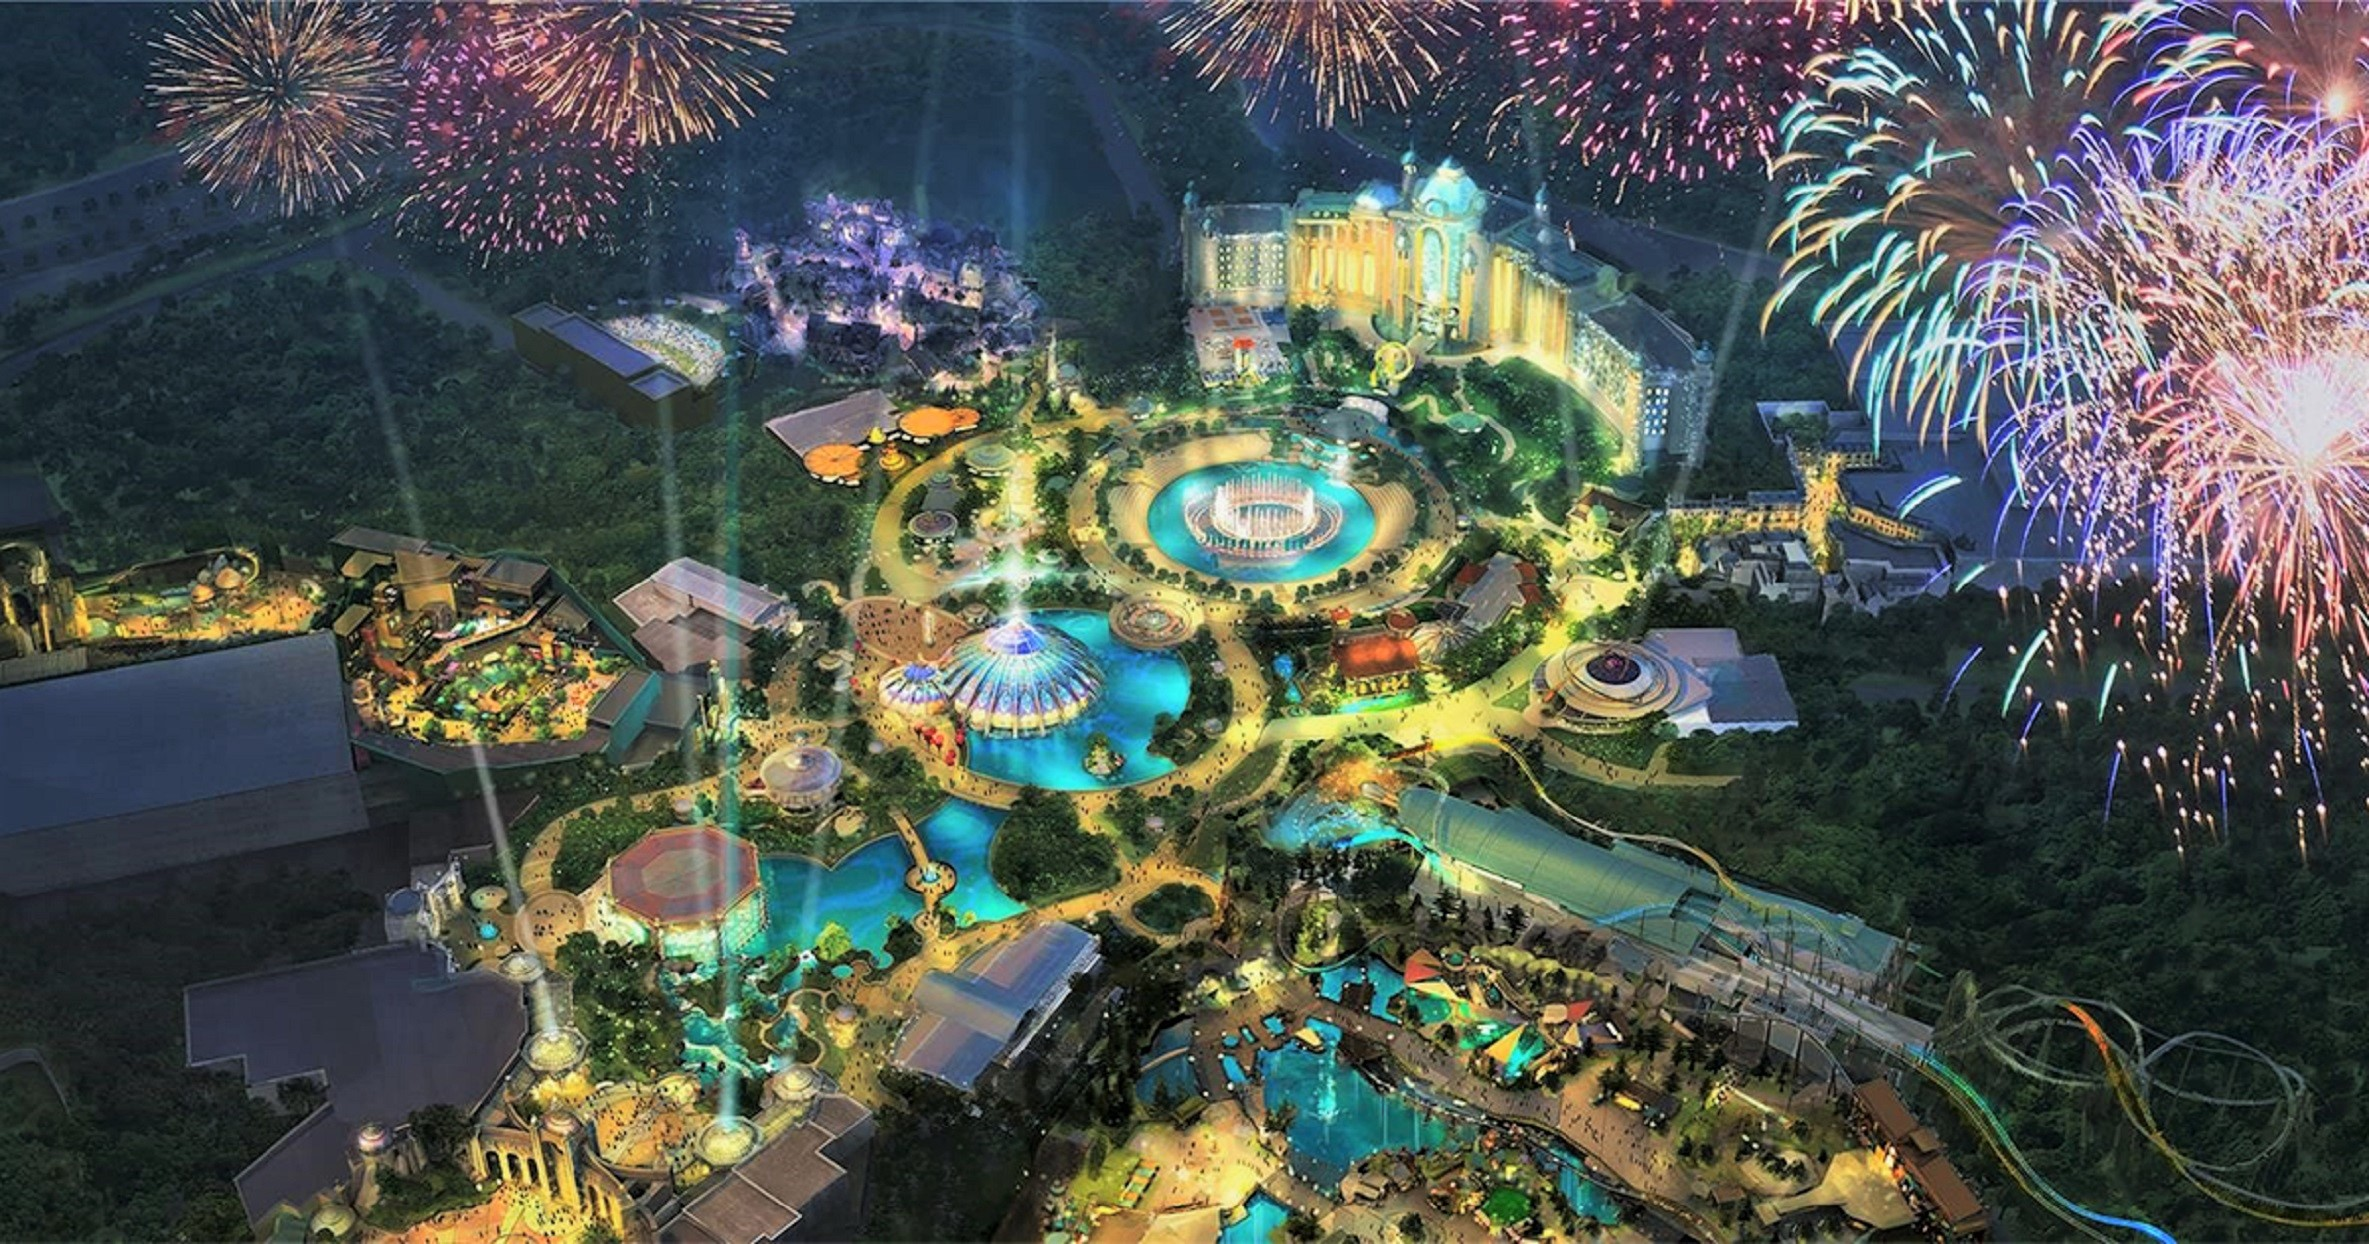 Universal Orlando Announces a New Theme Park, Epic Universe — Here's Everything We Know So Far